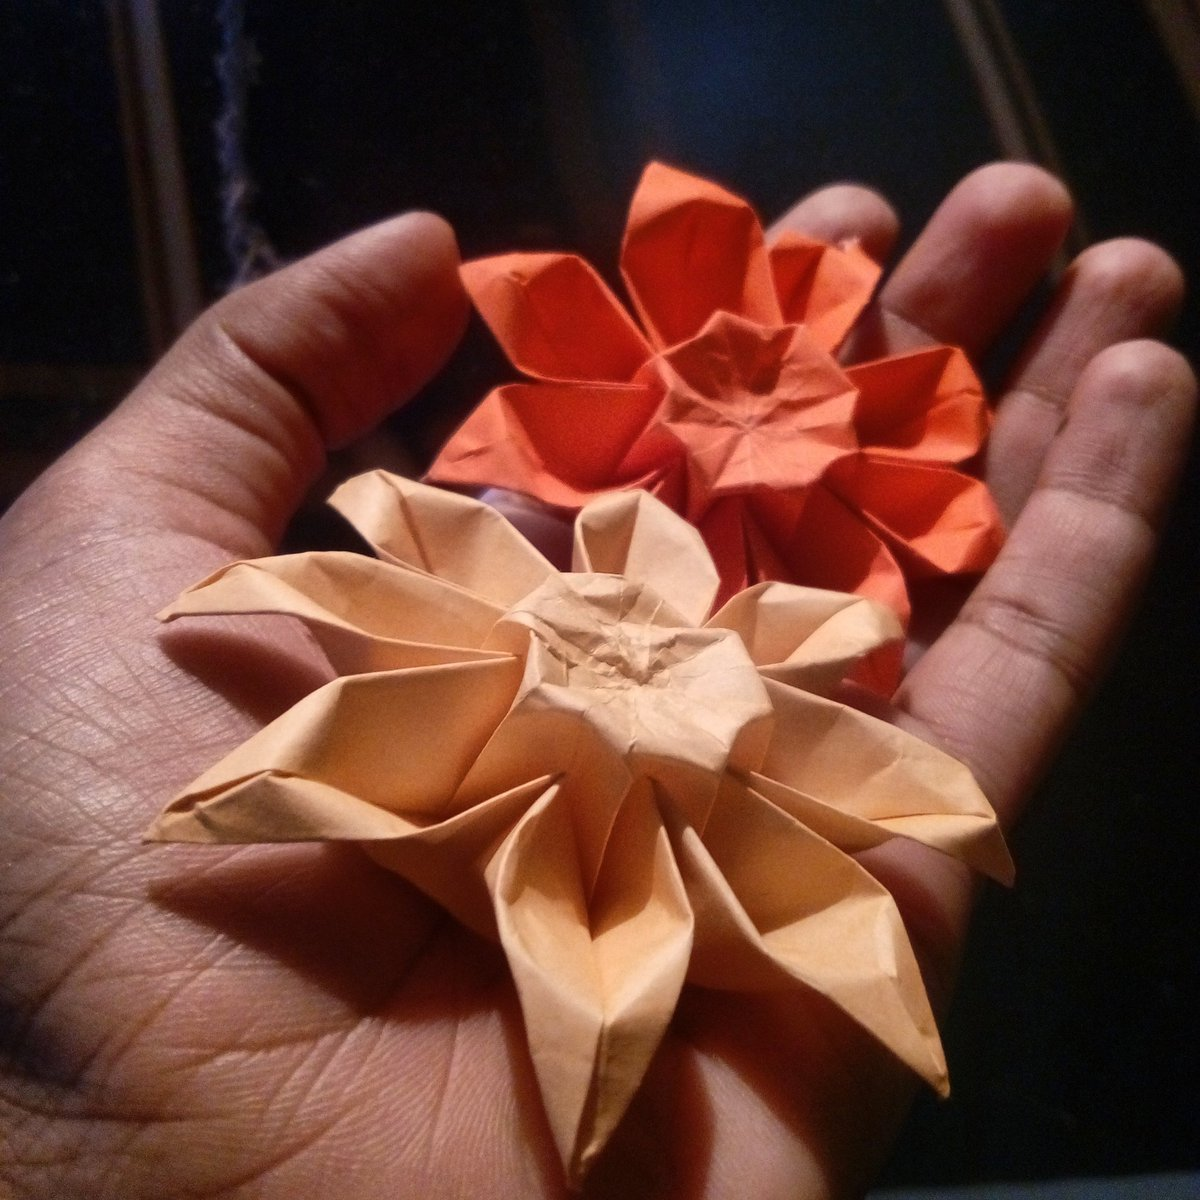 Heres A Bit Of Process For The Paper Craft Toran Decorative Door Hanging I Made Over Diwali Recently Started With These Intricate Origami Flowers